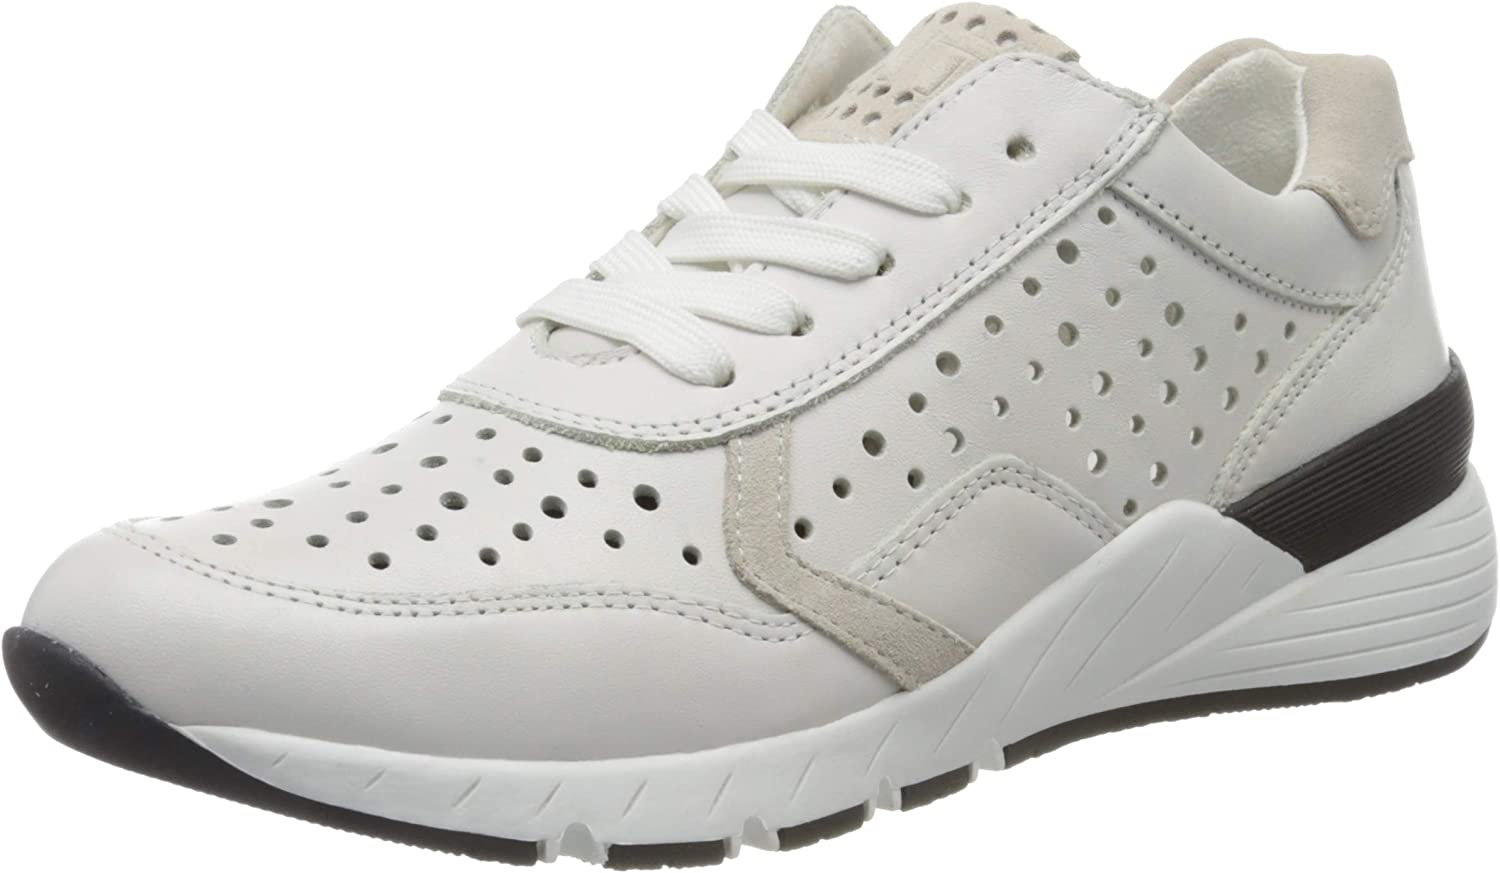 Marco New arrival NEW before selling ☆ Tozzi Women's Trainers Low-top